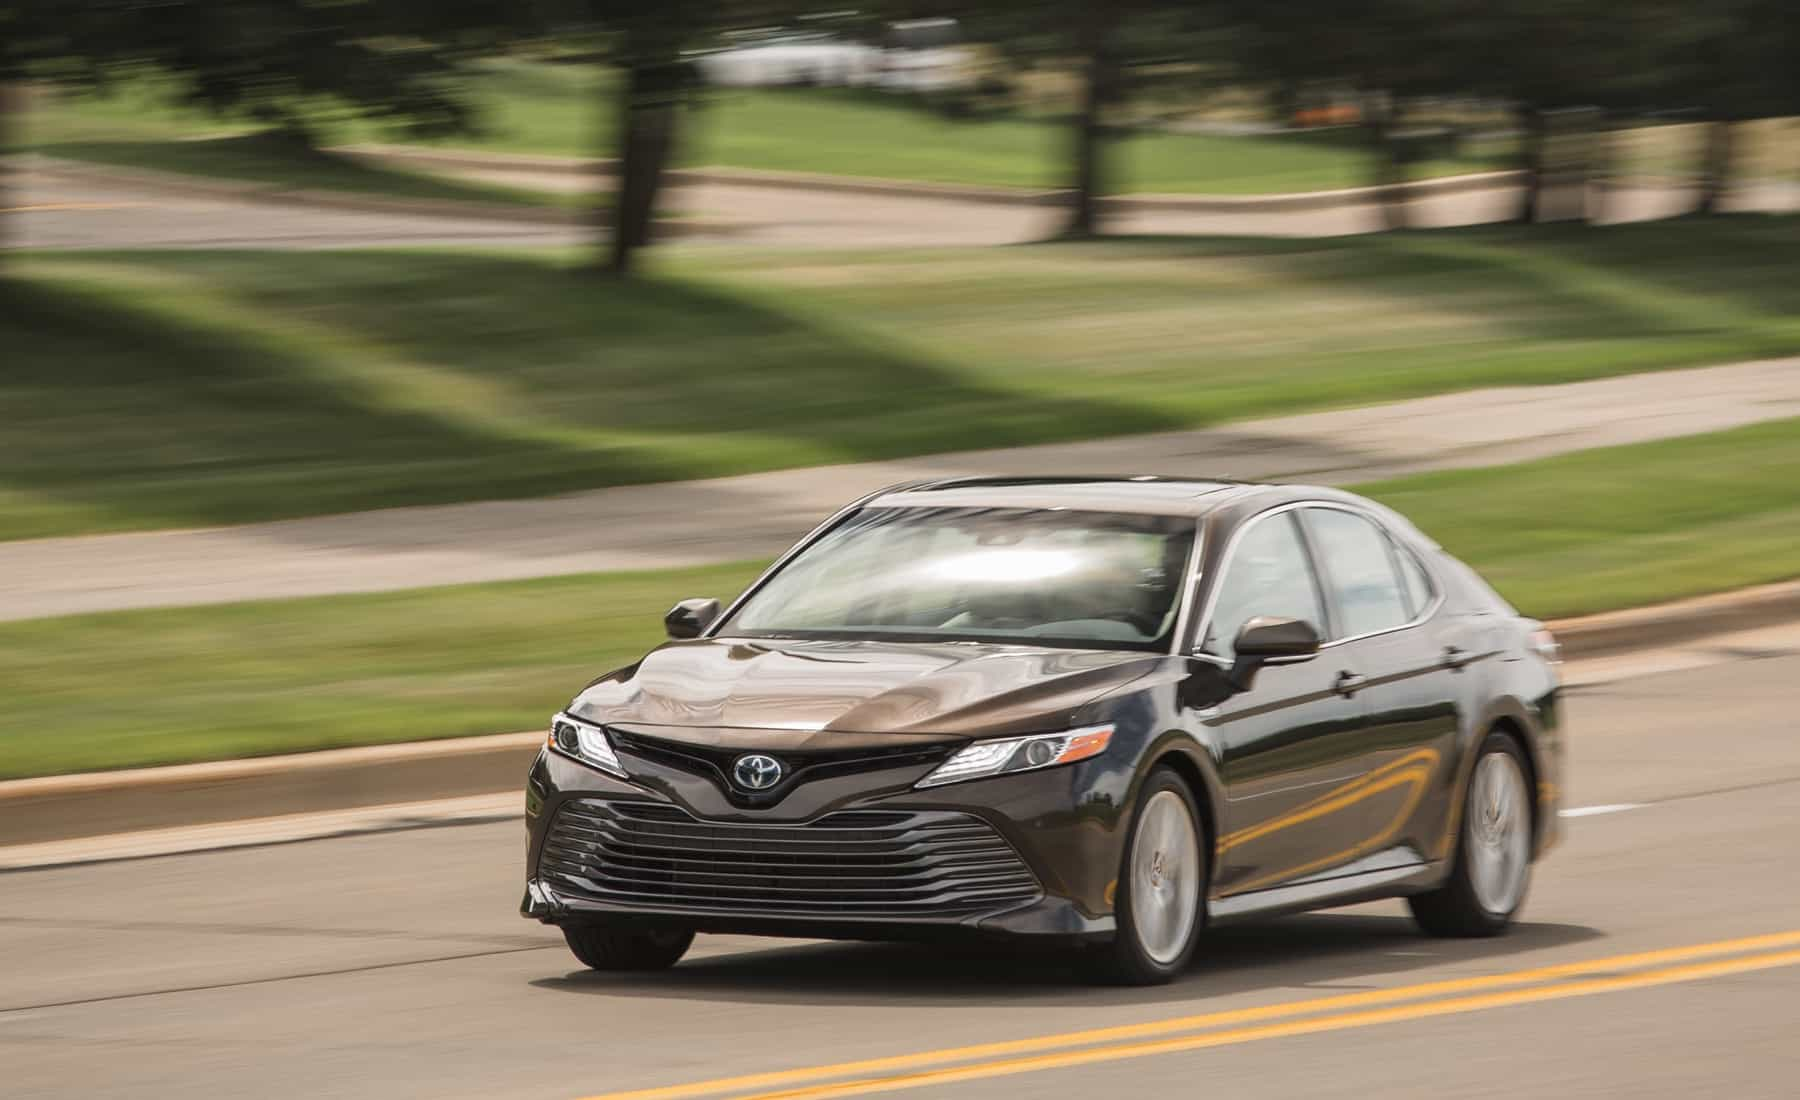 2018 Toyota Camry Hybrid XLE Test Drive Brown Metallic (Photo 36 of 41)